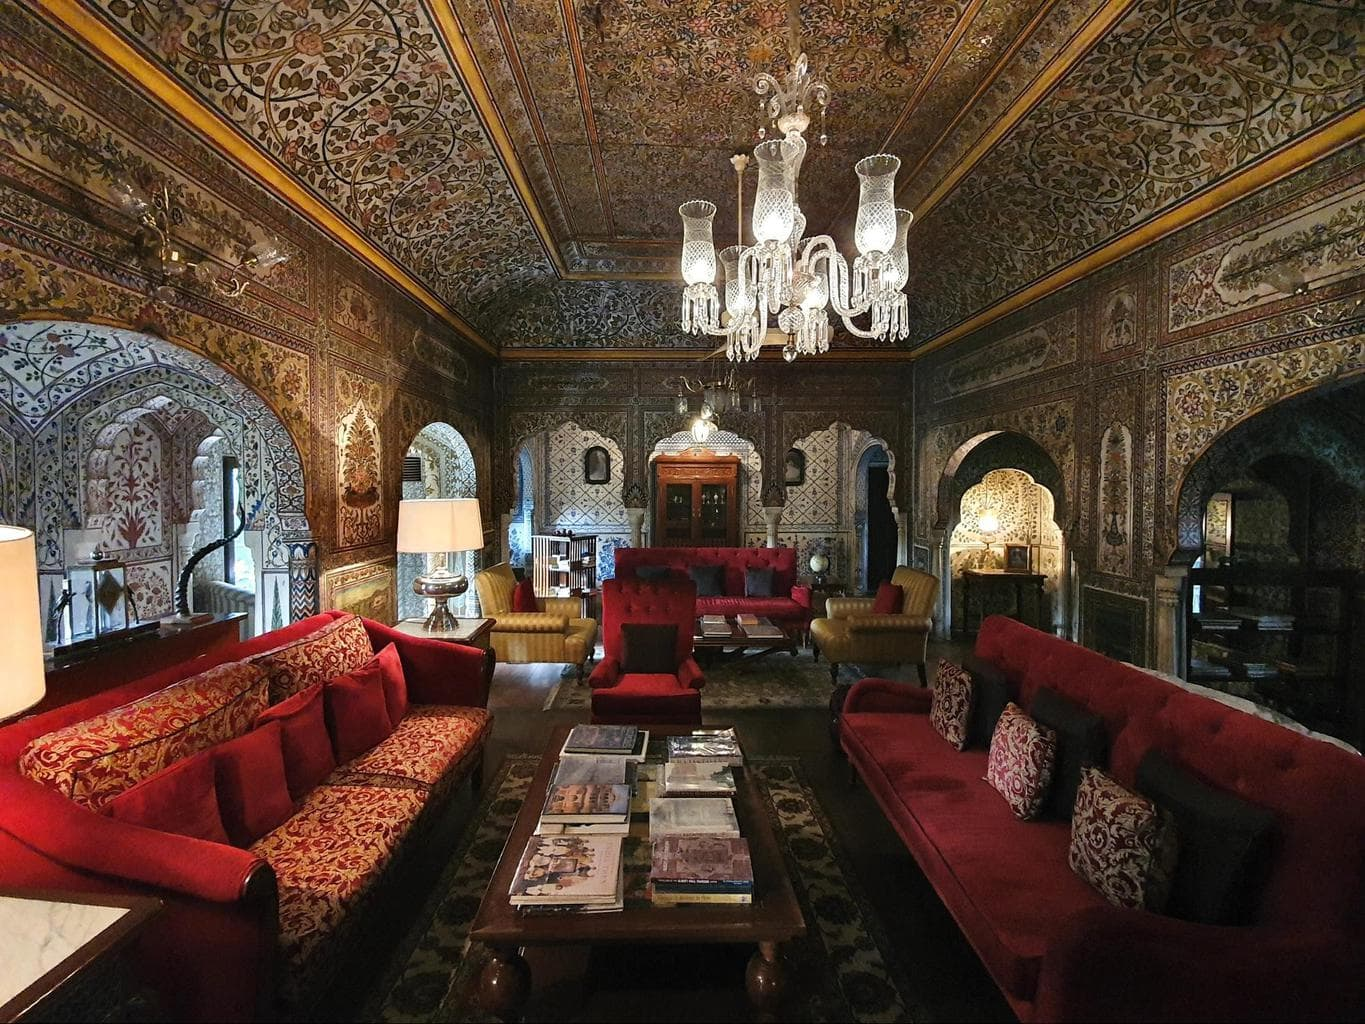 The interiors of Samode Haveli